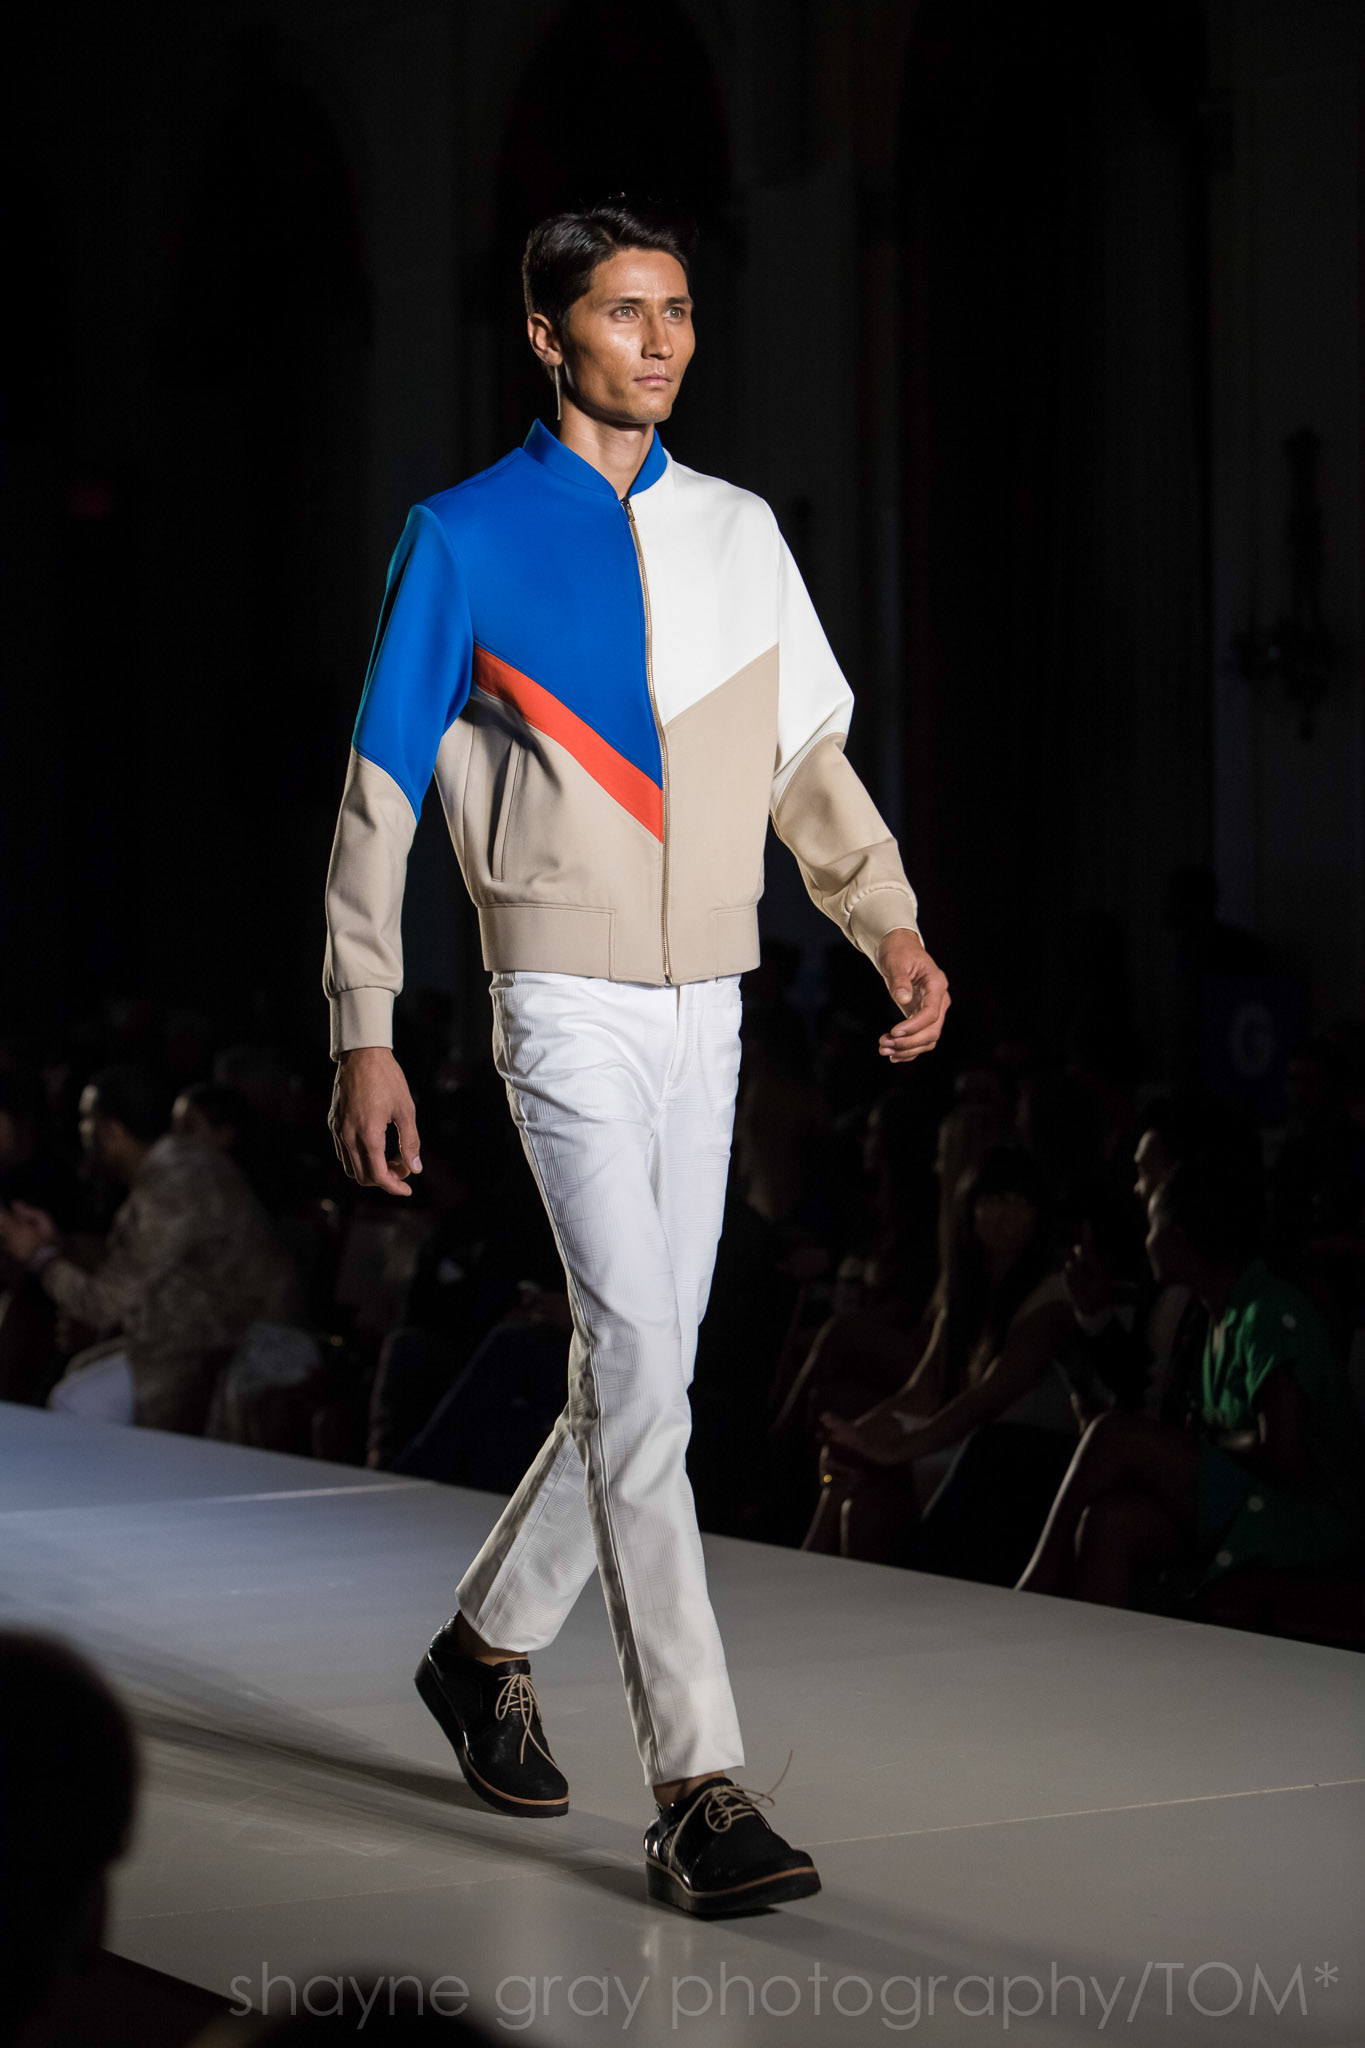 Shayne-Gray-Toronto-men's-fashion_week-TOM-noel-crisostomo-8453.jpg